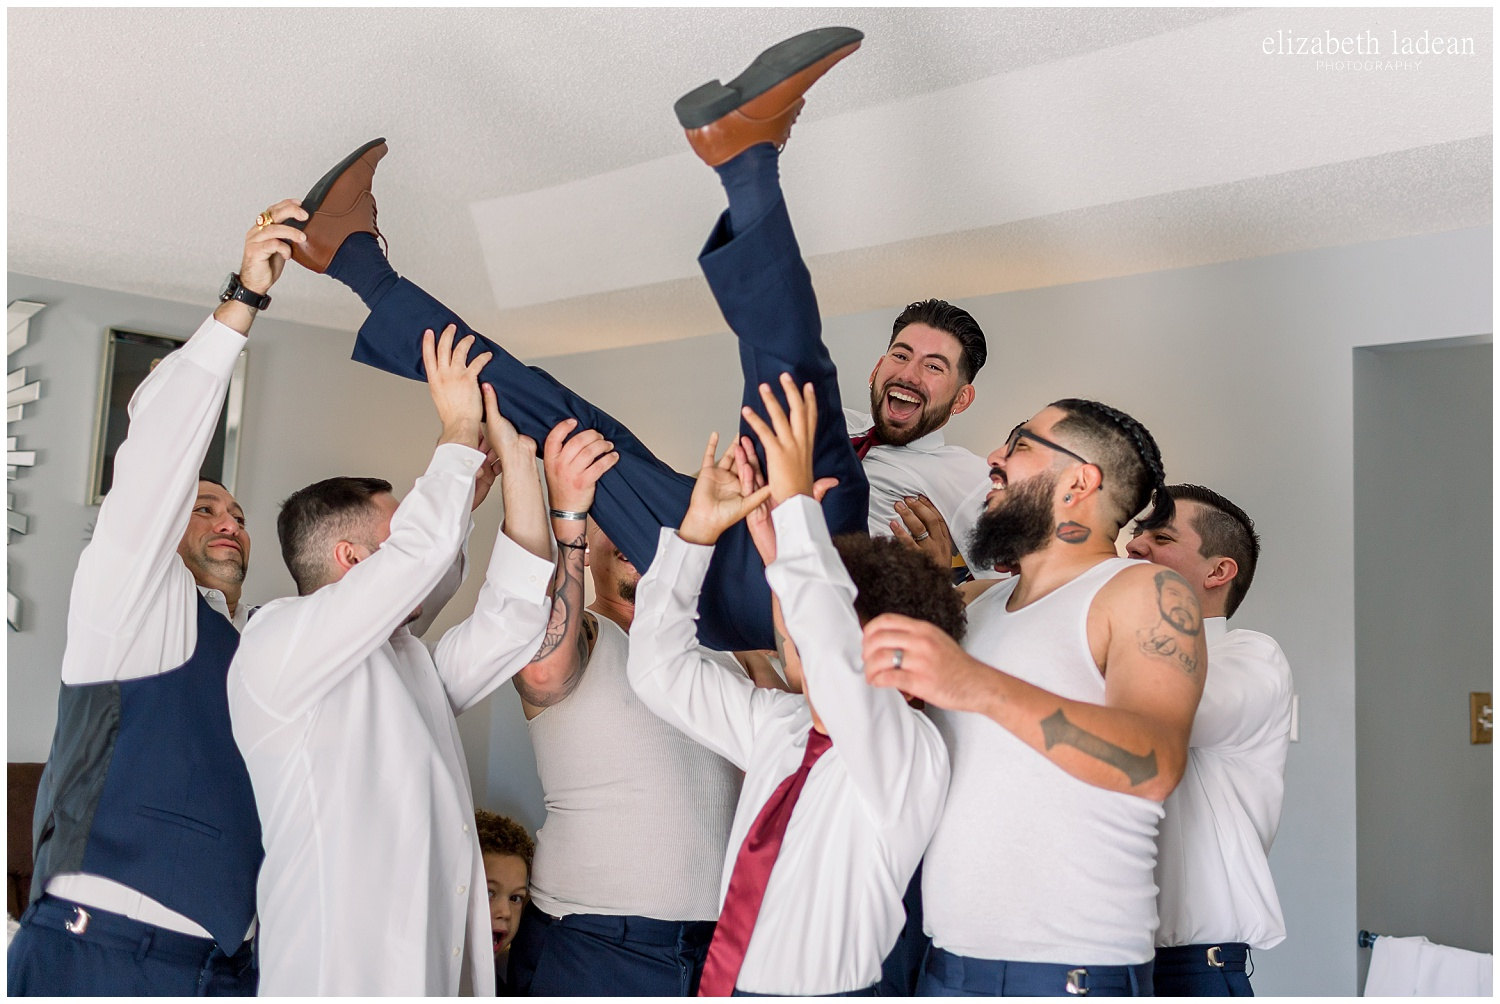 -behind-the-scenes-of-a-wedding-photographer-2018-elizabeth-ladean-photography-photo_3549.jpg